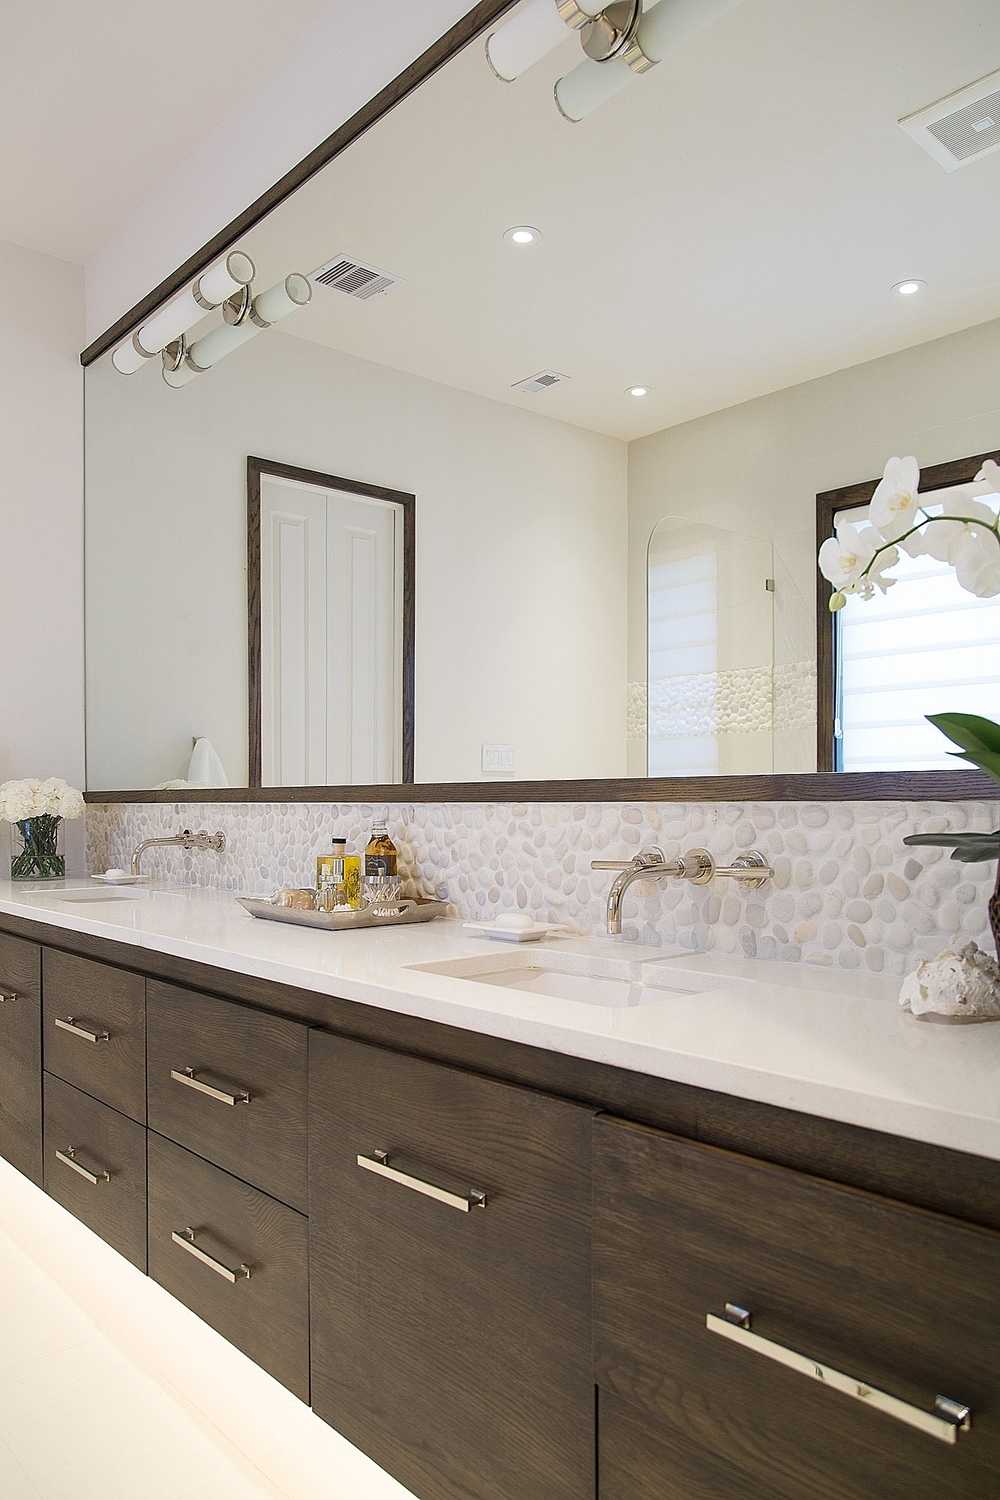 Master bathroom remodel; countertop; mirror; sink; cabinetry | Interior Designer: Carla Aston / Photographer: Tori Aston